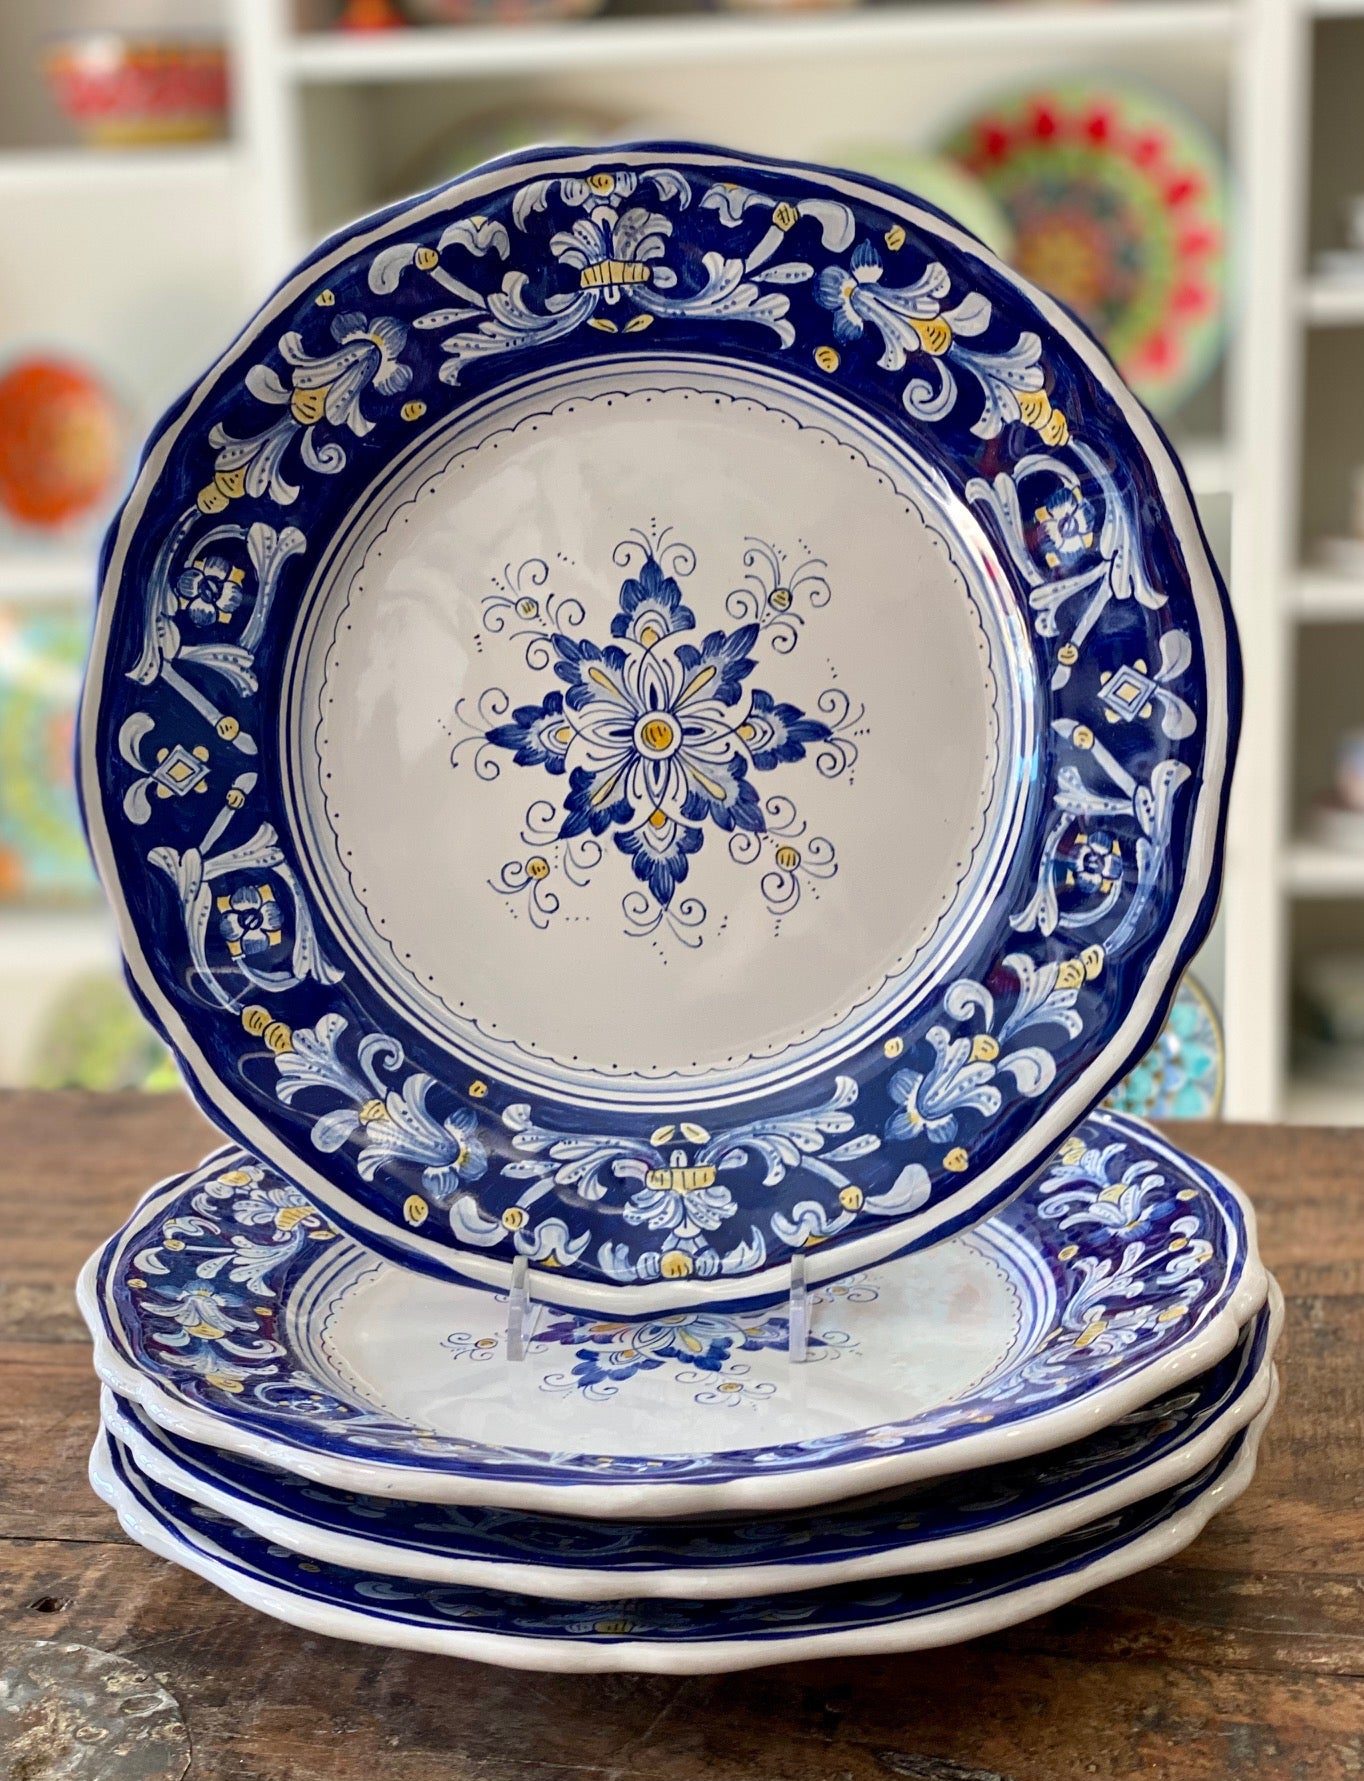 Antico Deruta Dinner Plate, Full Design - Set of 4